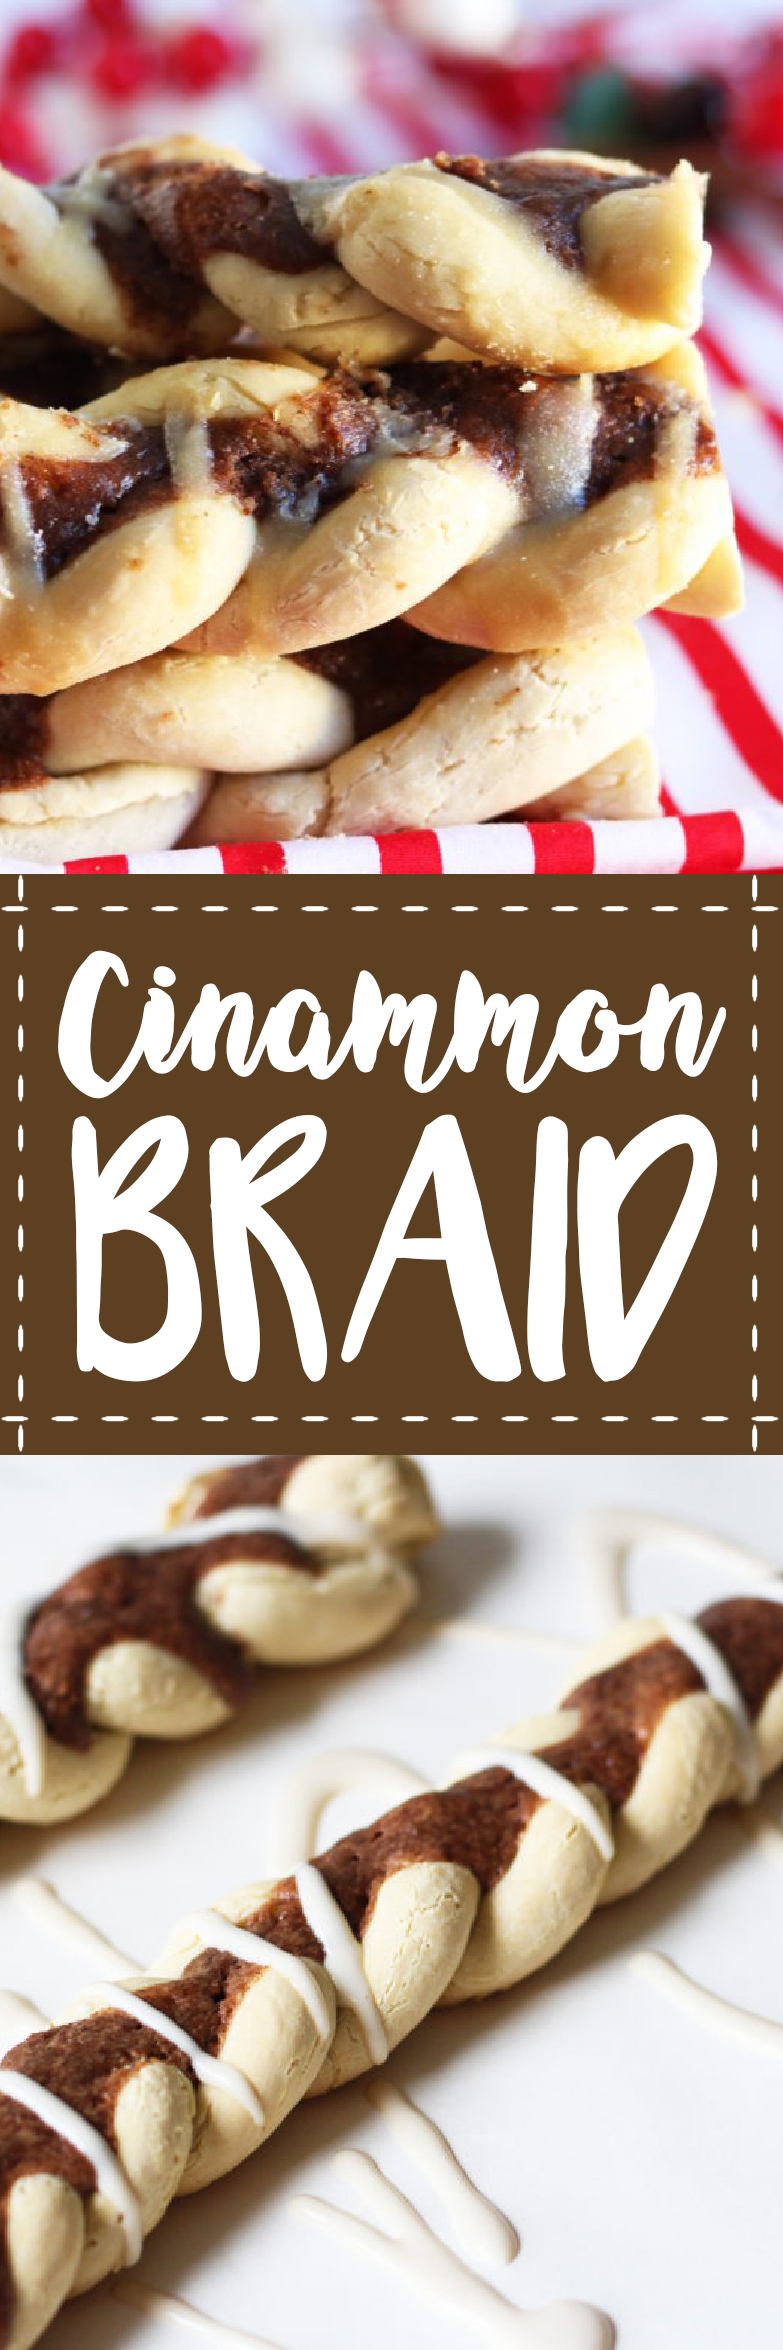 This cinnamon braid is combination bread and cinnamon roll, gluten free, vegetarian and delicious.